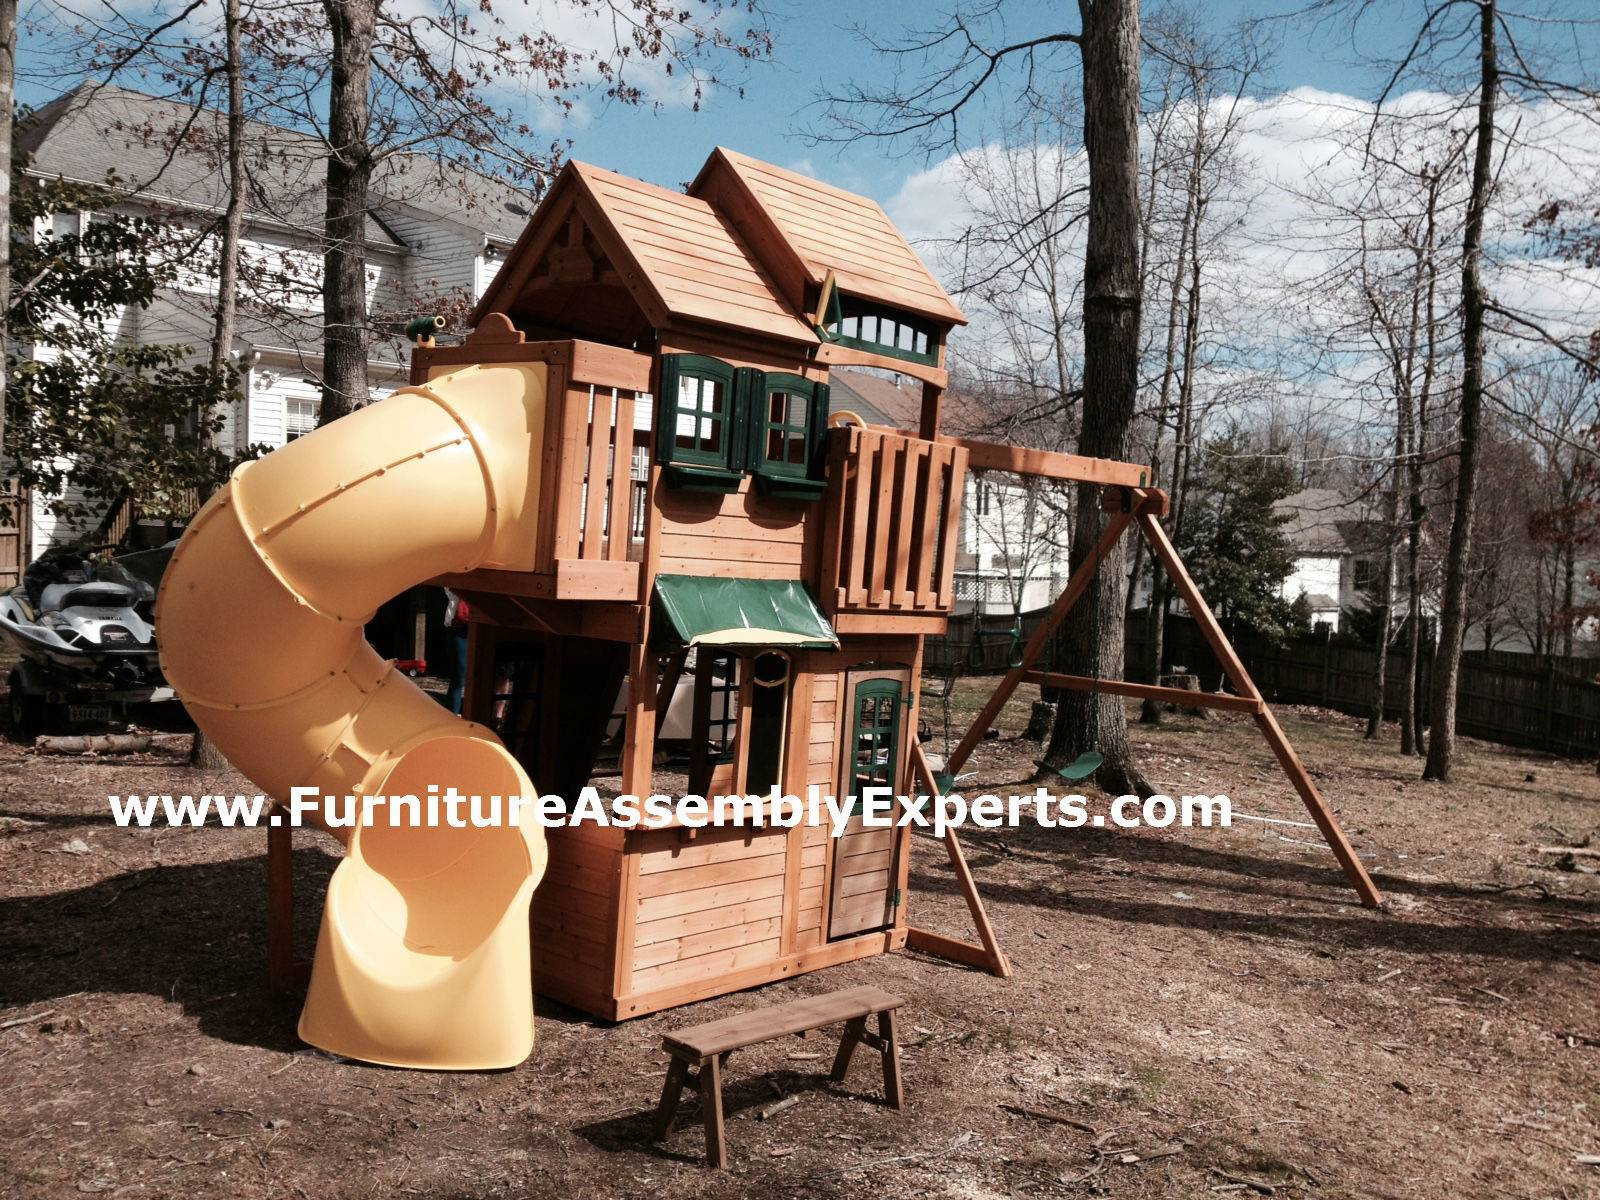 backyard playset assembly service in bryans road MD